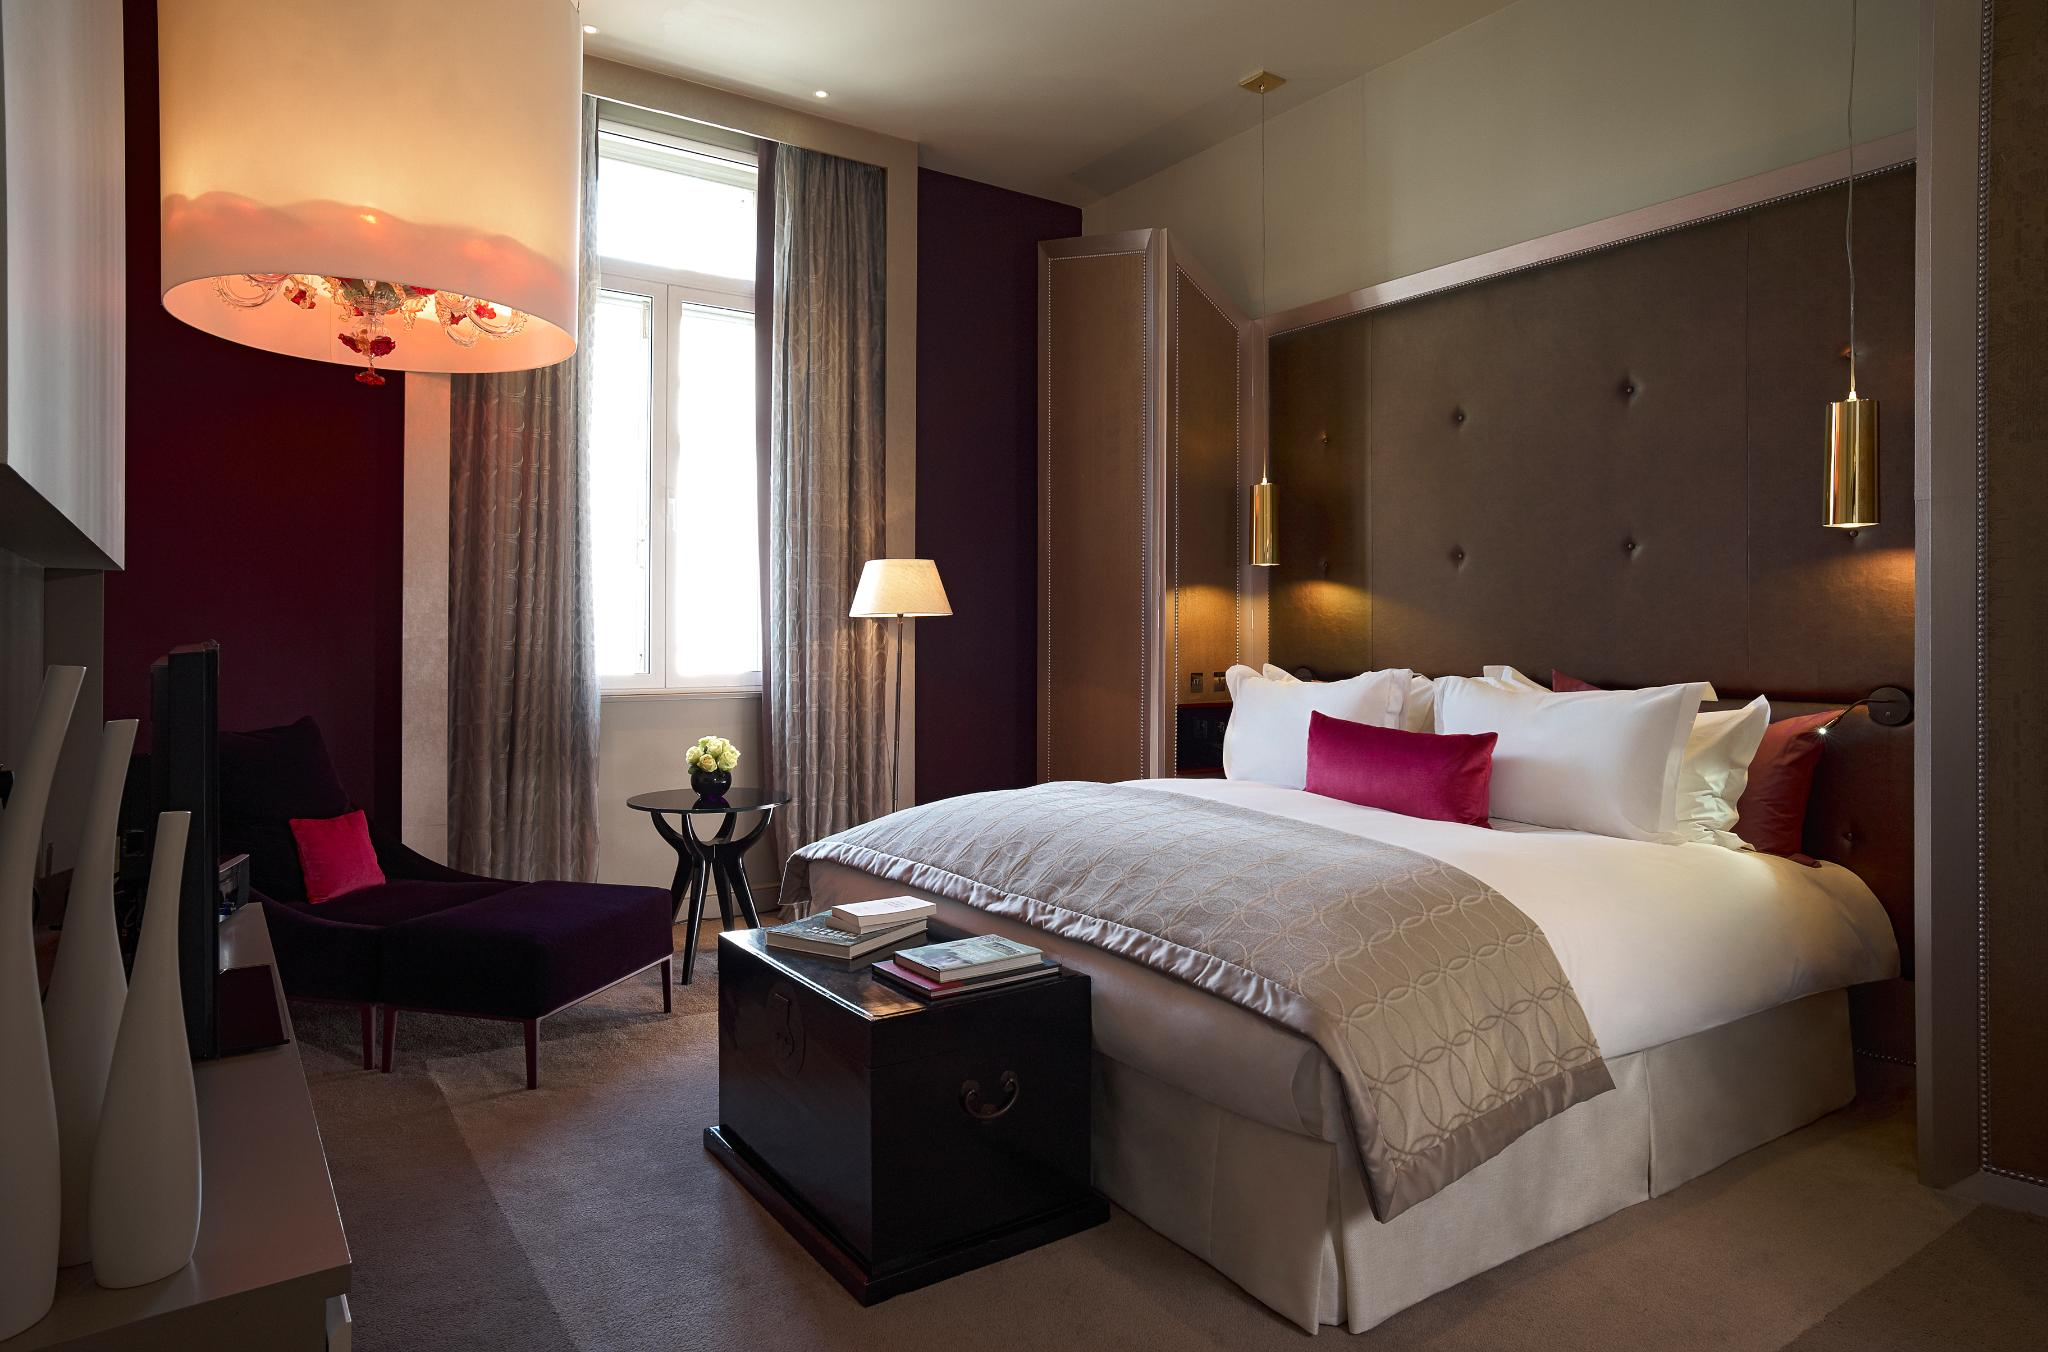 SUITE OPERA SUITE, 1 KING BED, SEPARATE LOUNGE AND DINING SPACE, VIEW OVER WATERLOO PLACE